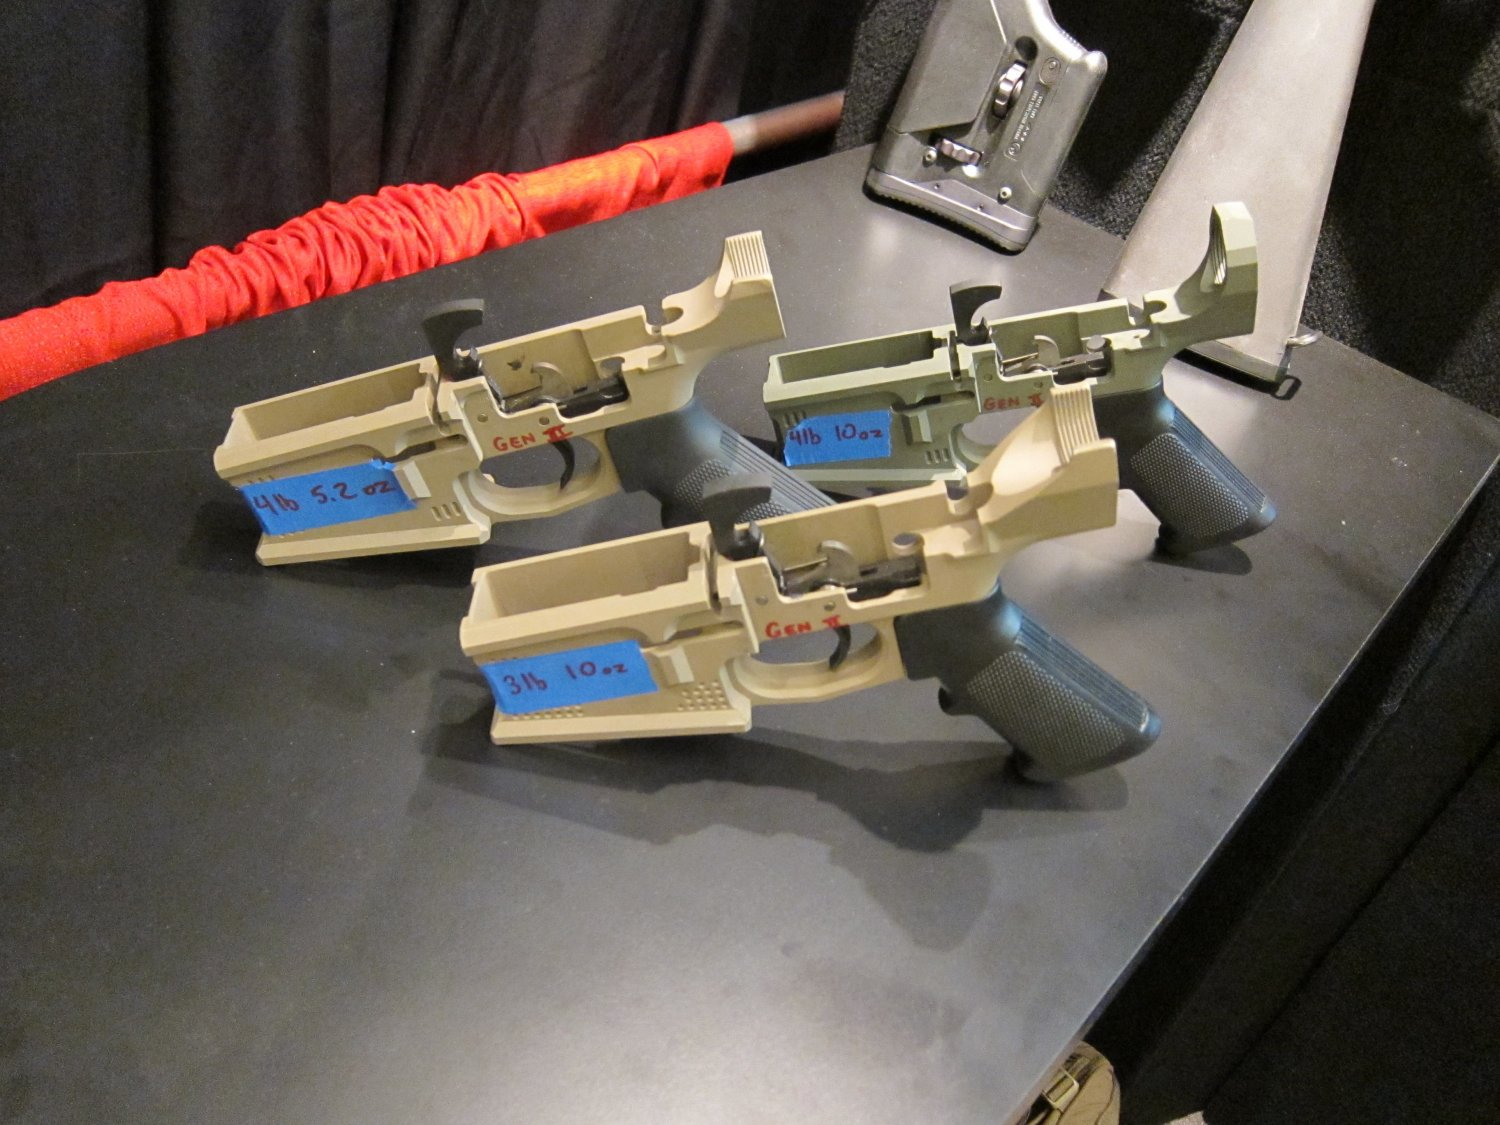 SHOT Show 2010 Iron Ridge Arms IRA 7.62mm AR Rifle Carbine Receivers and Trigger Assemblies 1 <!  :en  >Iron Ridge Arms IRA X (formerly IRA 10) Complete Sniper Rifle/Battle Rifle: This time, Thors hammer takes the form a 7.62mm/.308 tactical AR sniper rifle/carbine.<!  :  >